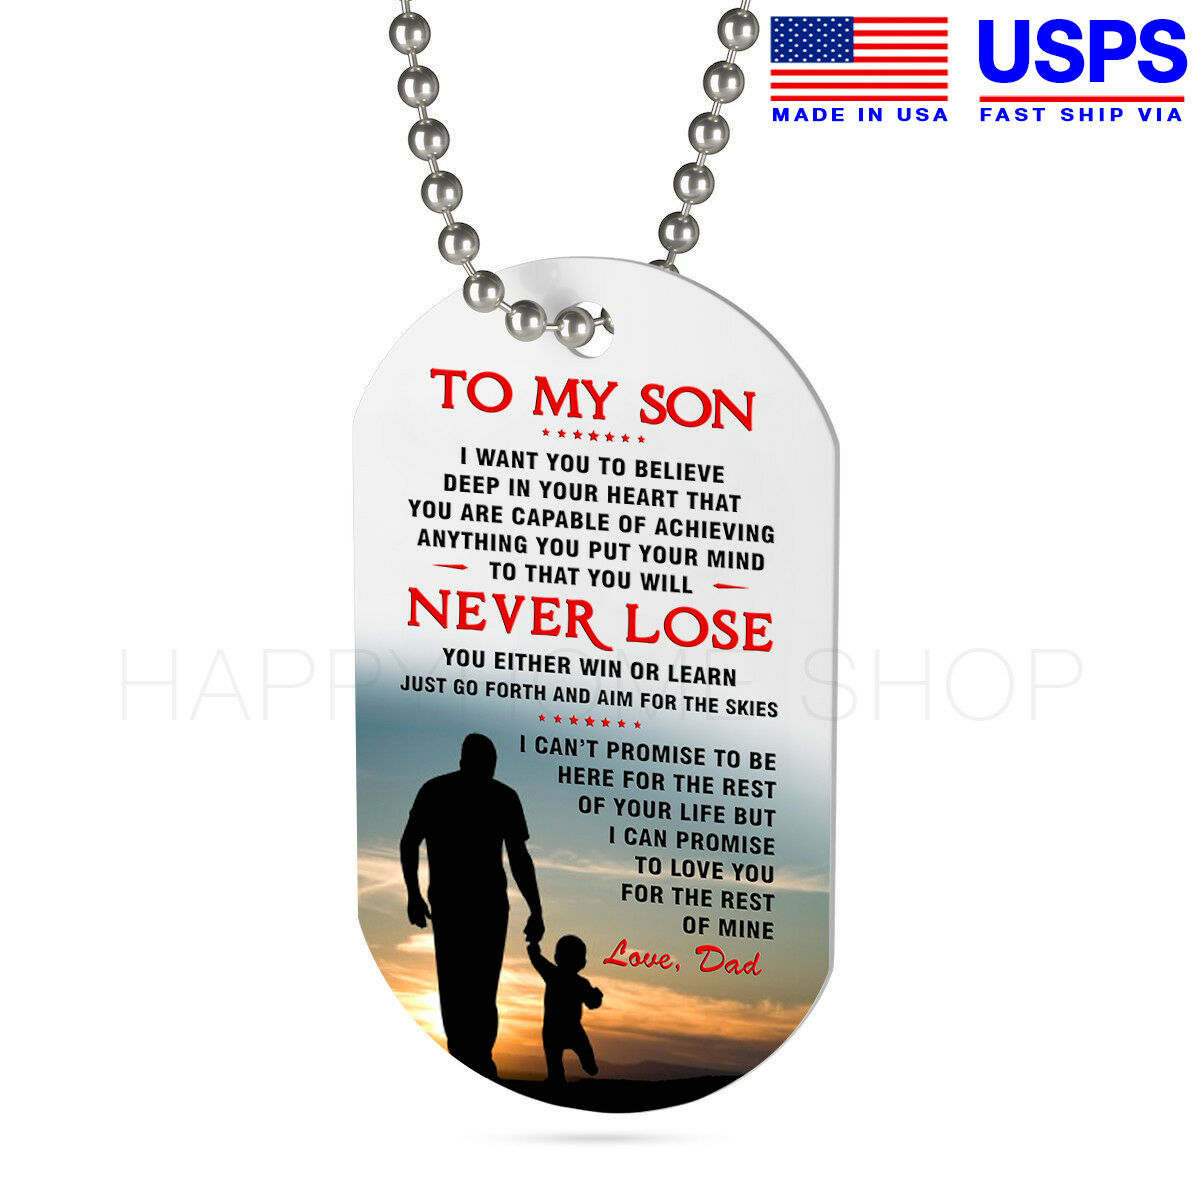 Details About Dog Tag Birthday Gift For Son From Love Dad Father And Never Lose